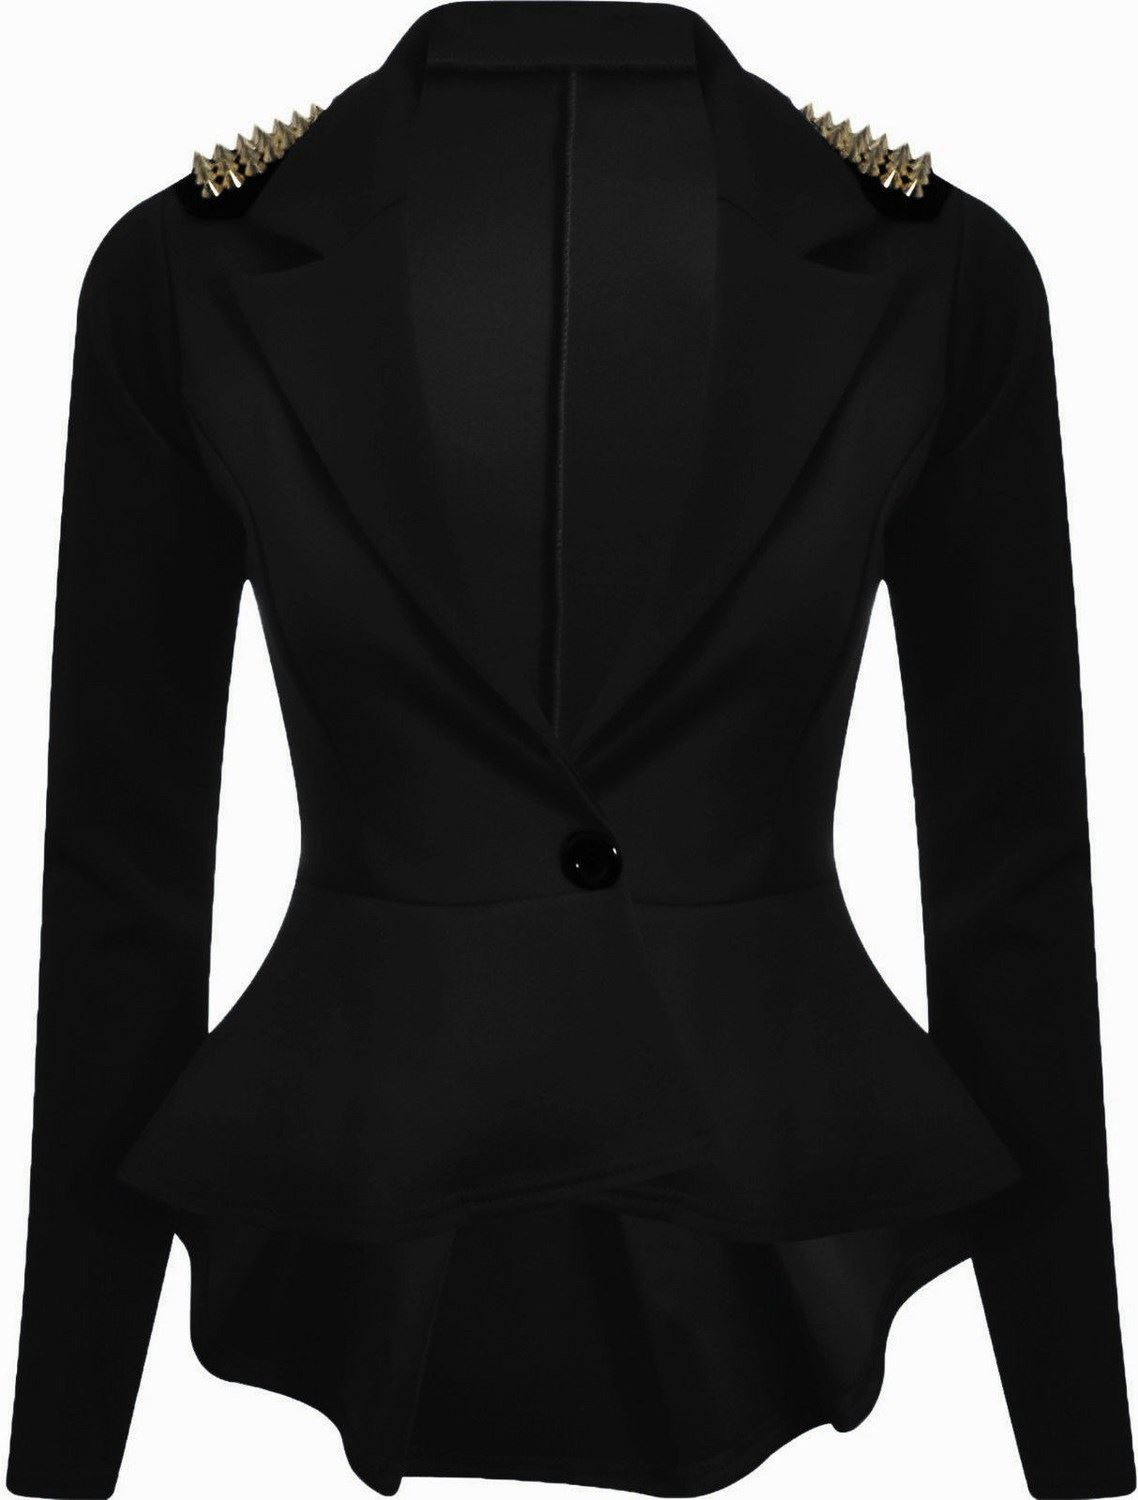 Jackets and blazers womens